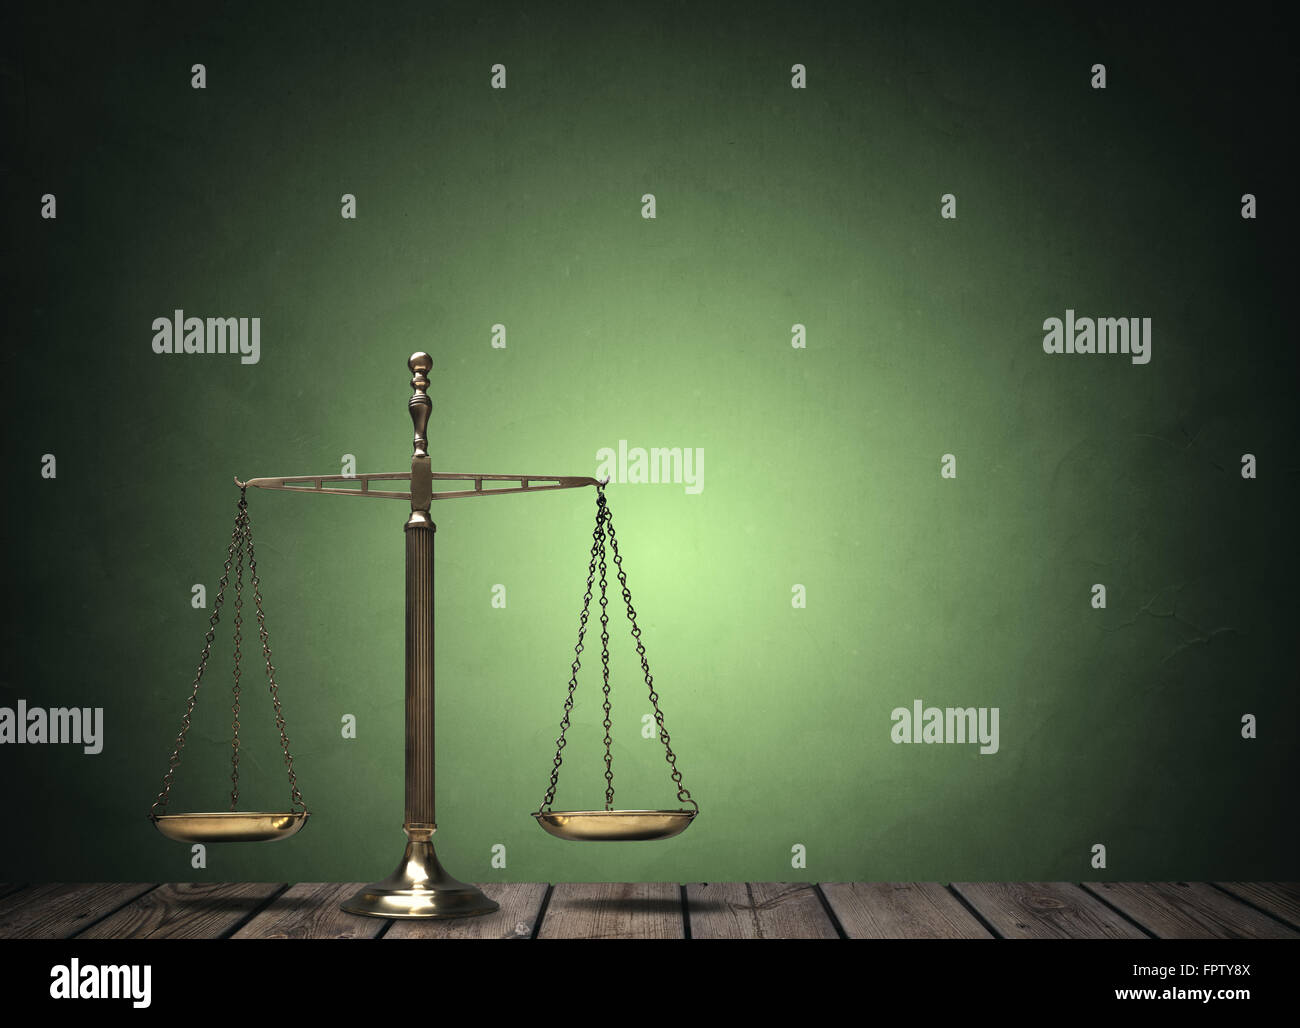 Law scales on wooden desk concept for justice and equality - Stock Image